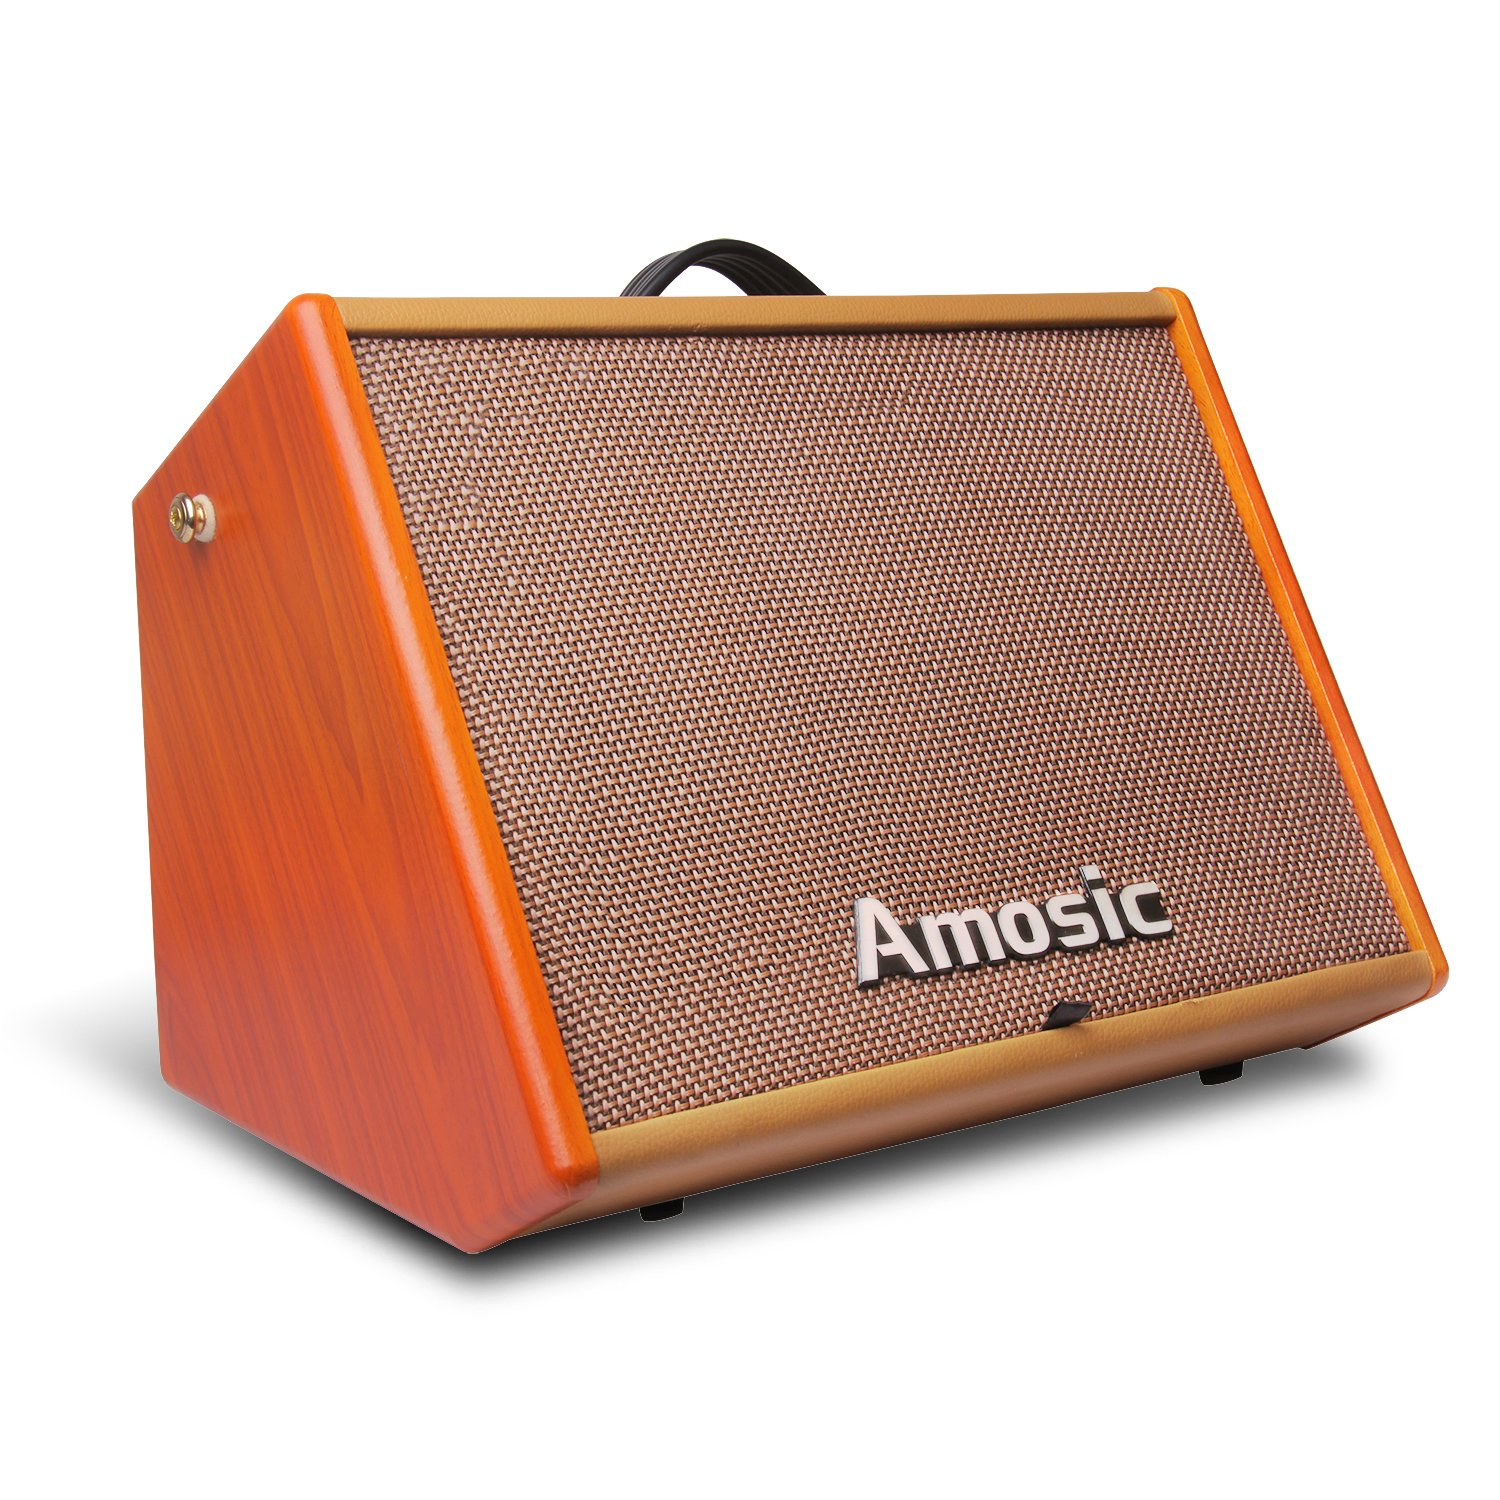 Amosic Guitar Amplifier 25W, Combo Amp Speaker with Free Cable Bundle for Street Performance and Guitar Practice by Amosic